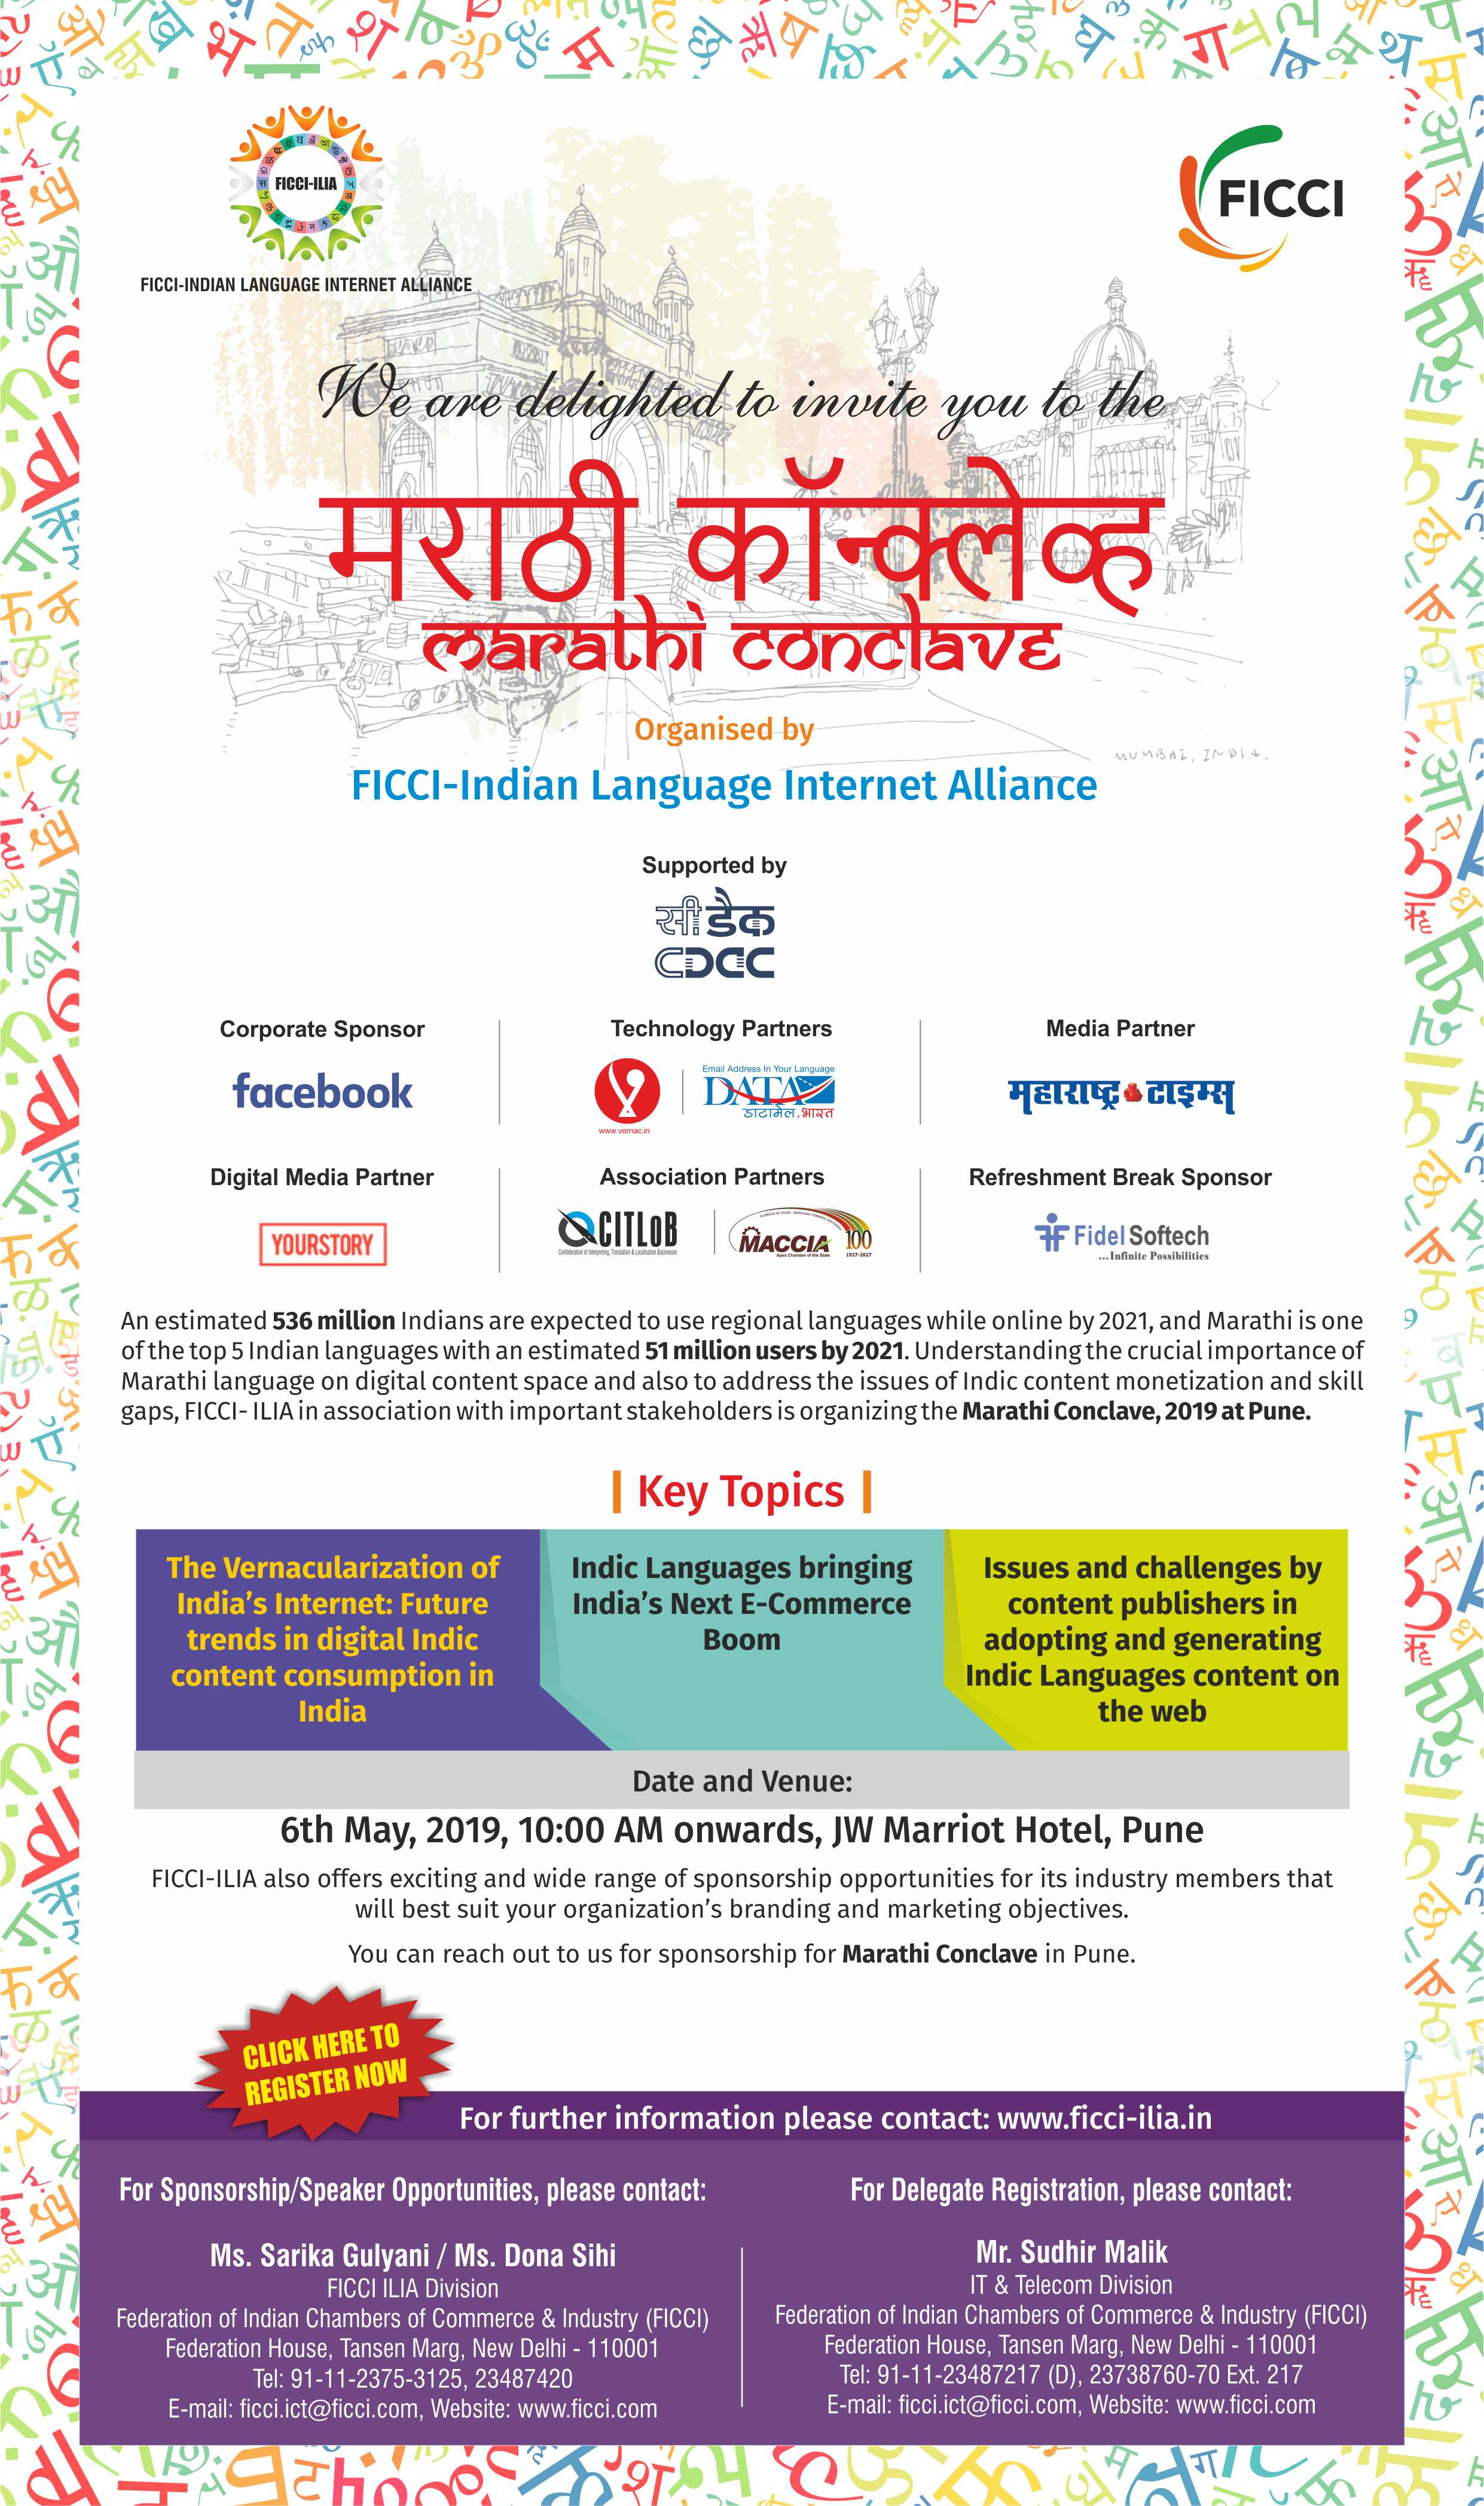 Marathi Conclave by FICCI